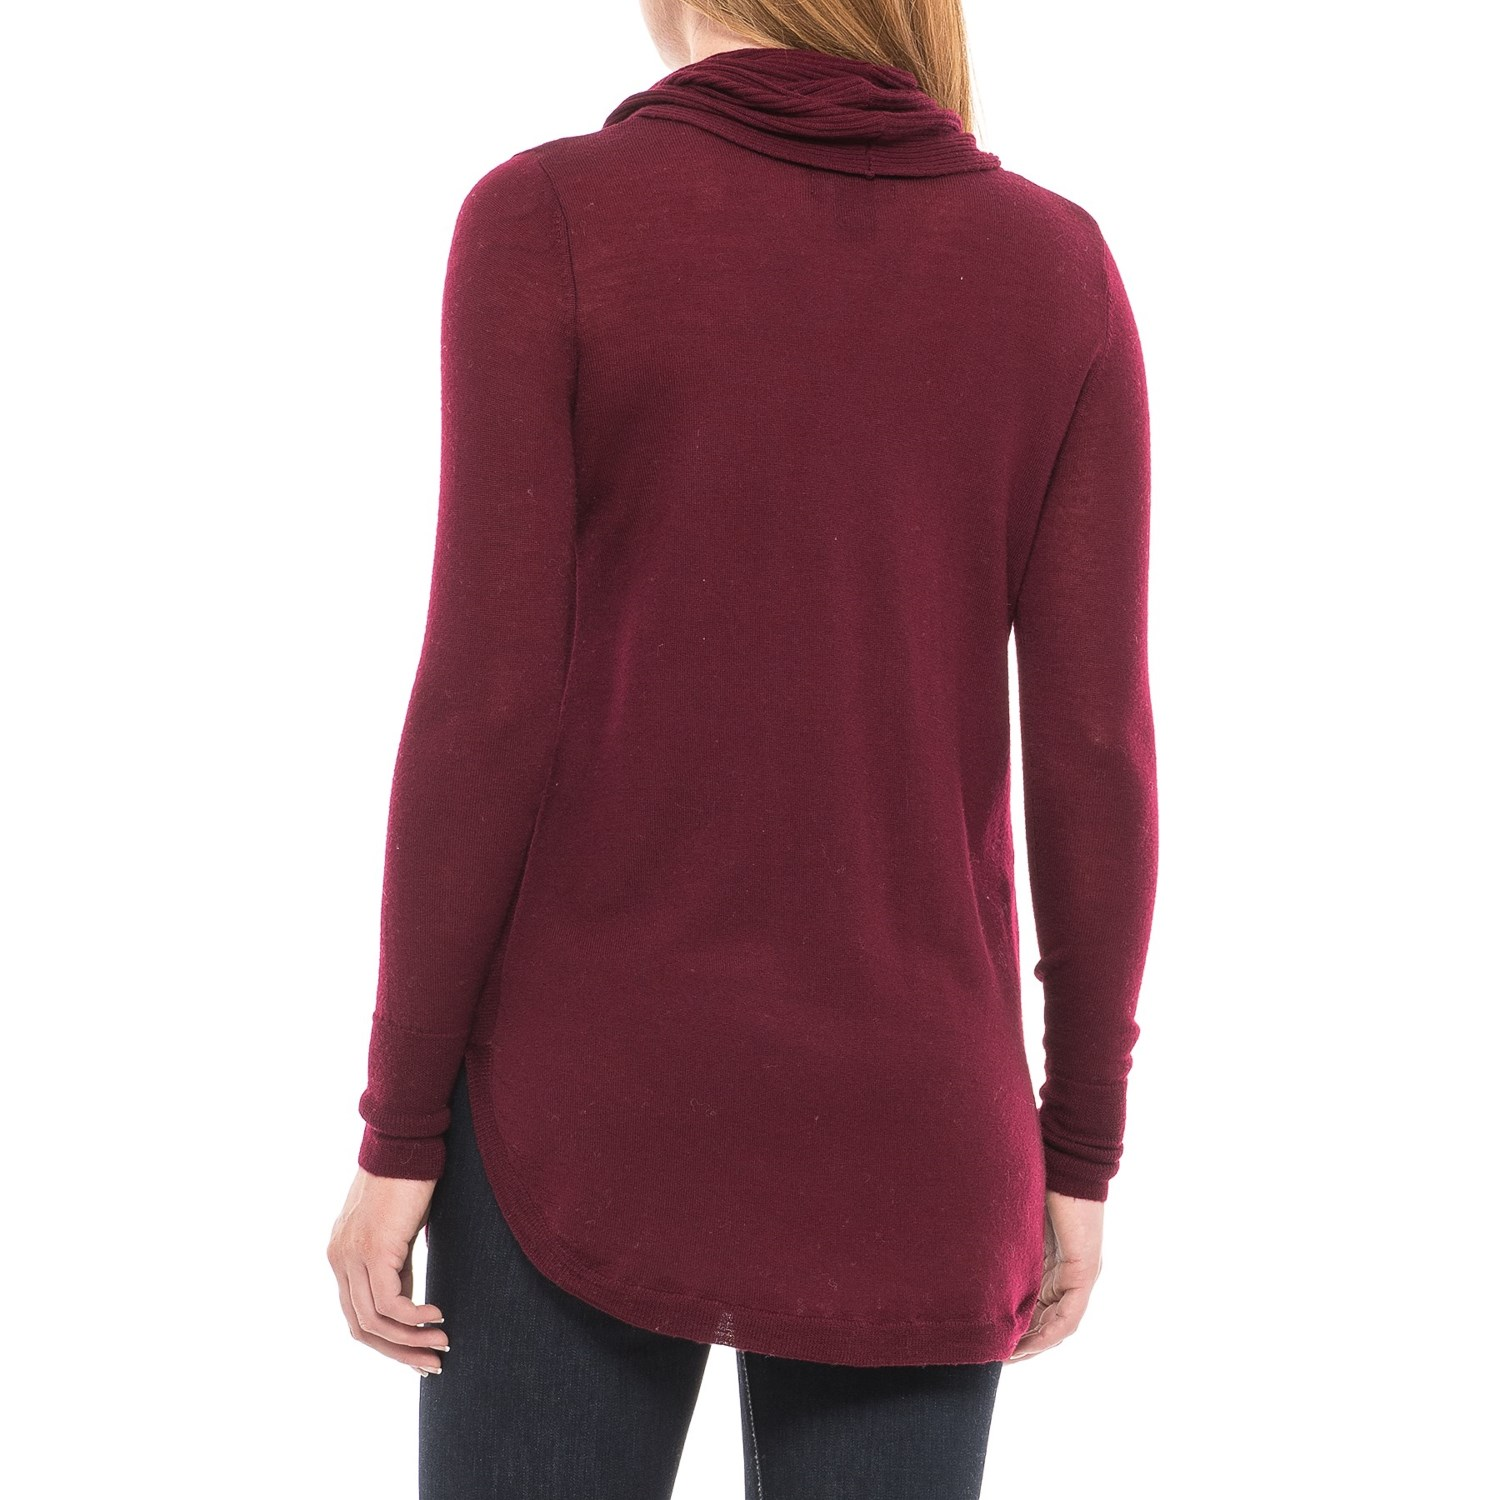 Cynthia Rowley Cowl Neck Tunic Sweater (For Women) - Save 48%